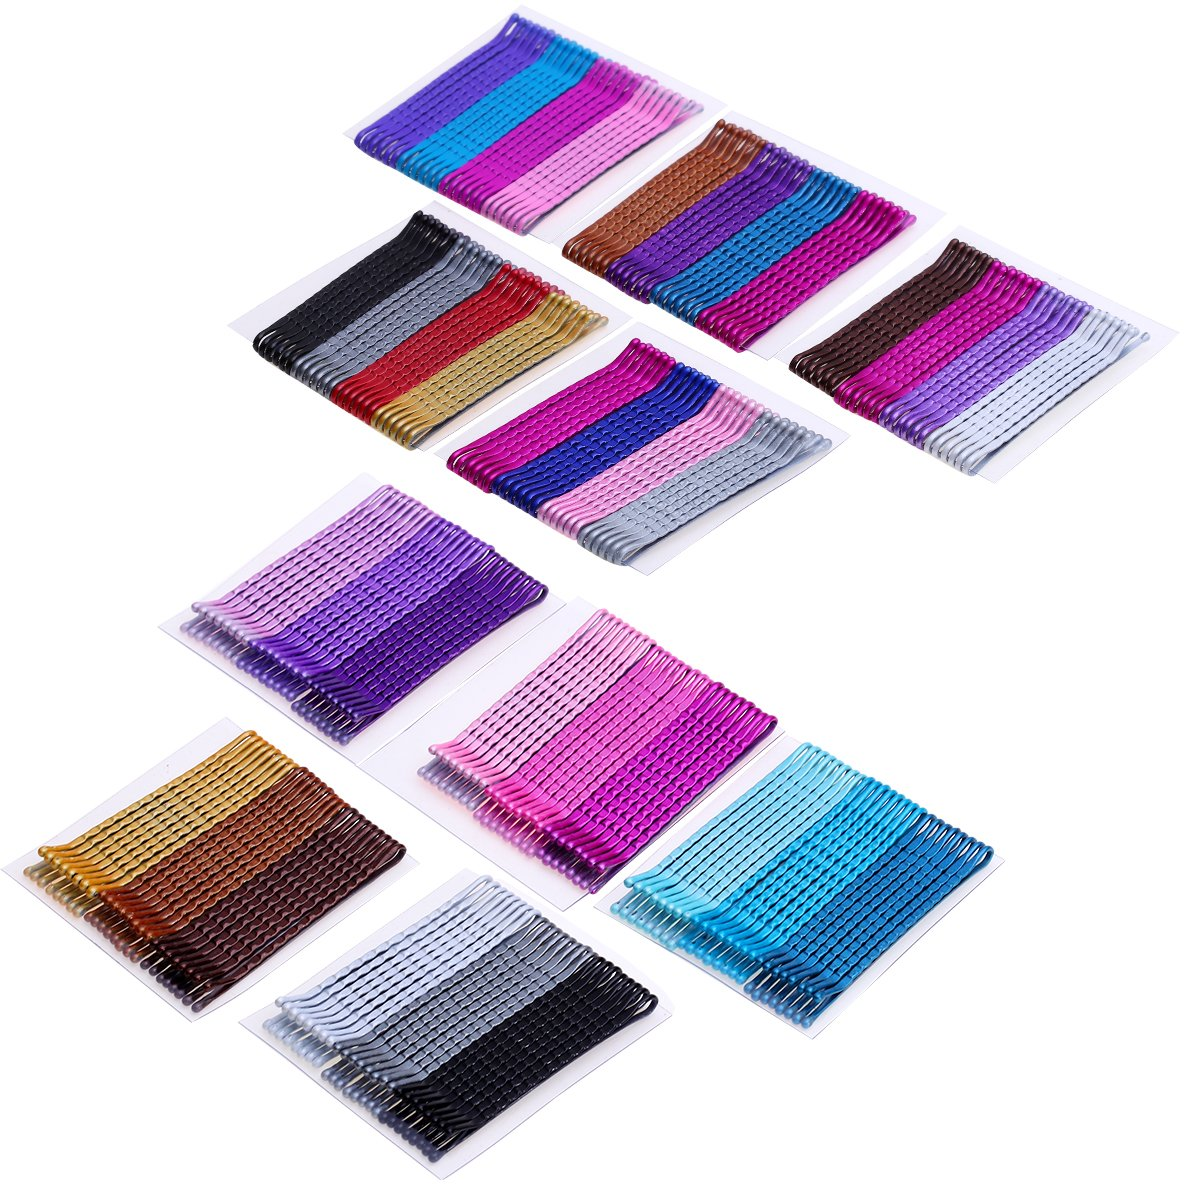 Justbuy Bobby Pins 2 Inches Hair Clips Metal Barrettes 24 pcs Per card, 10 Card Counted Color Mixed